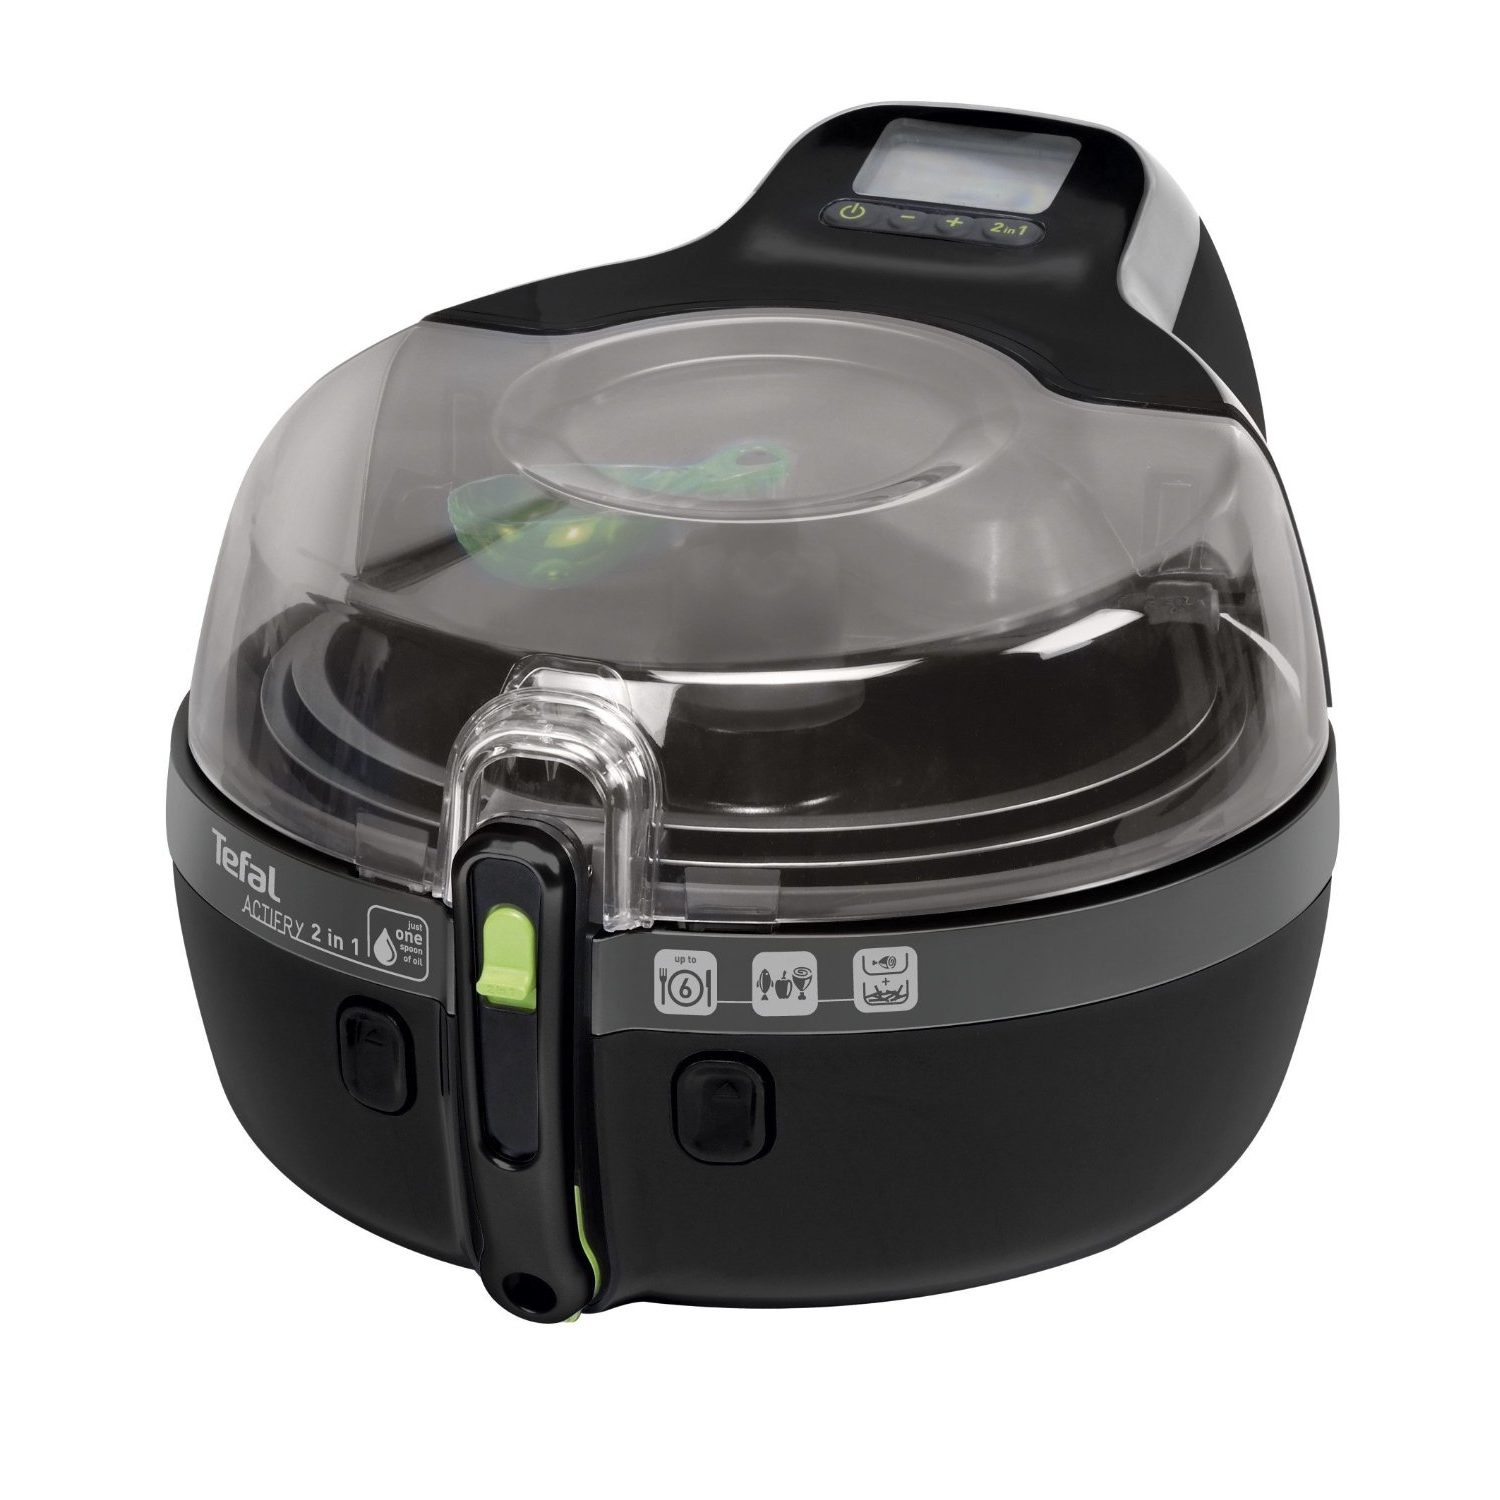 Tefal Küchengeräte Tefal Yv 9601 Actifry Fritteuse Xenudo